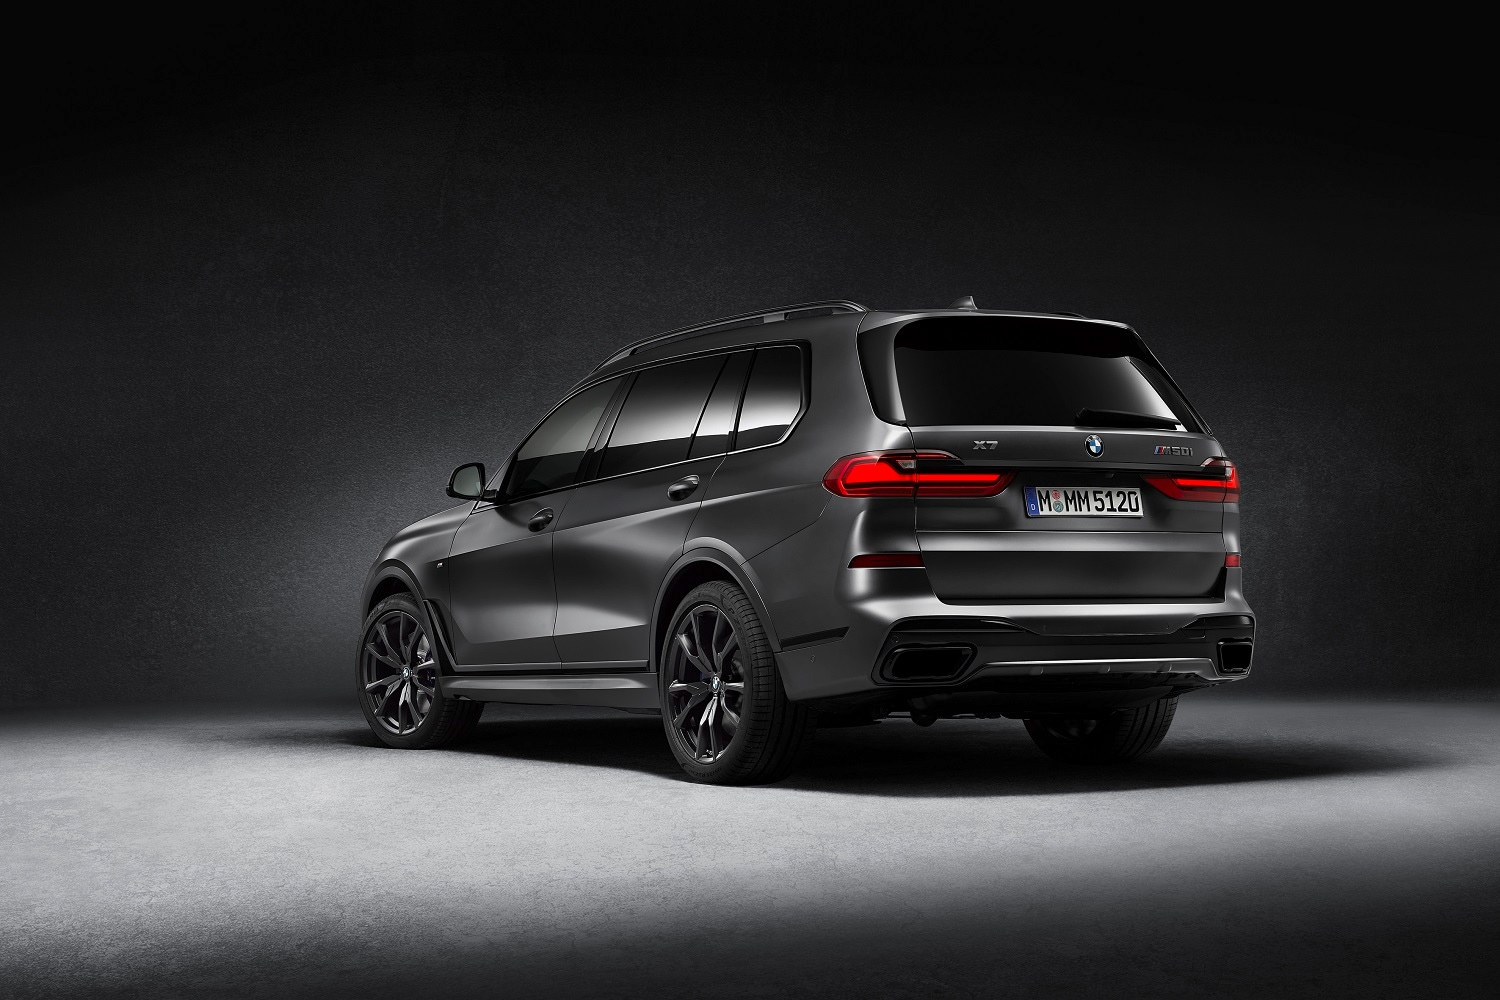 The BMW SUV sits on 22-inch M light-alloy wheels in V-spoke design with a Jet-Black matt finish and fitted with mixed tyres. Power comes from a 2993 cc three-litre six-cylinder diesel engine which has an output of 400 hp and a maximum torque of 760 Nm.